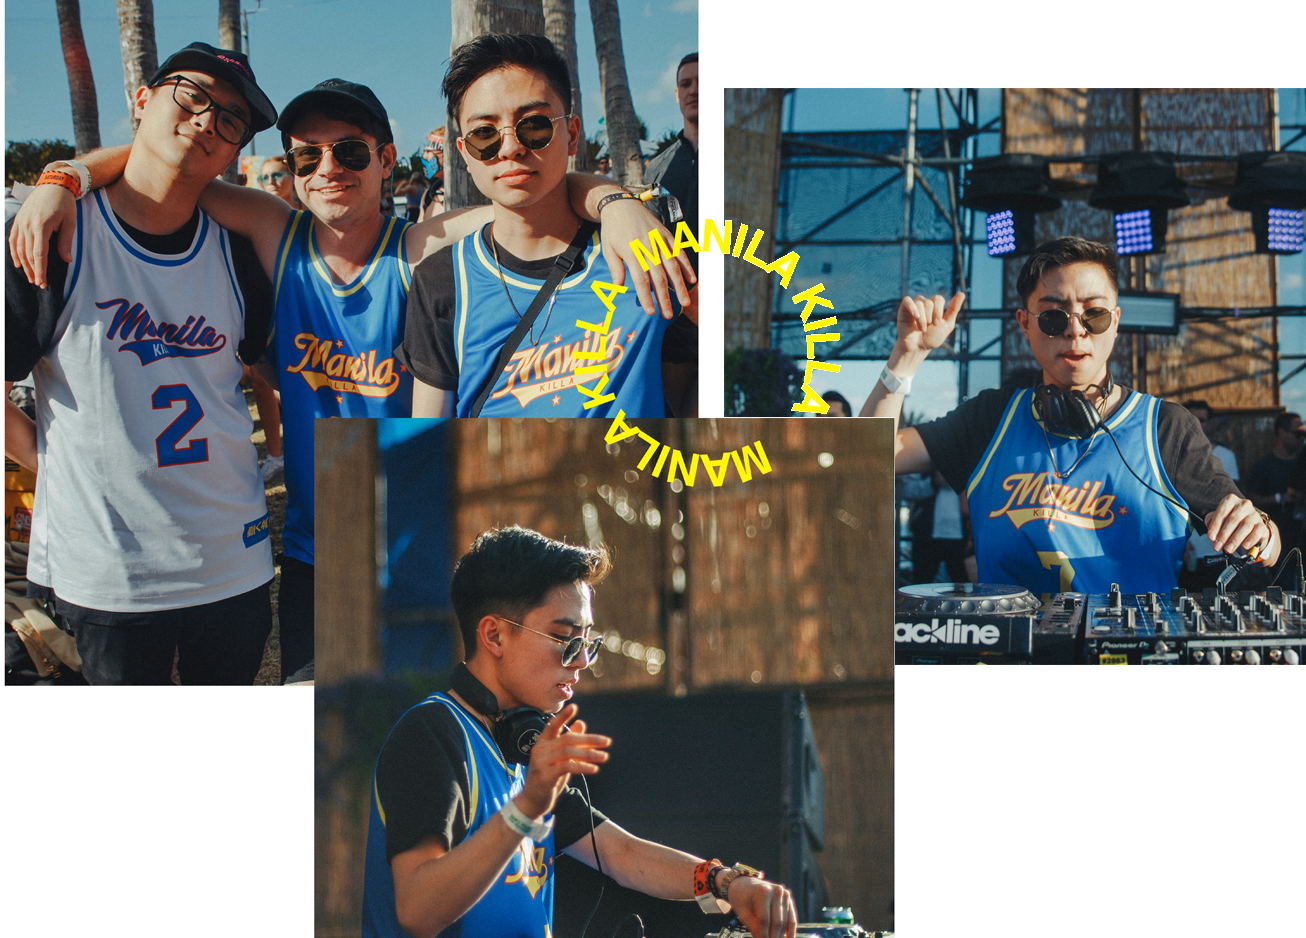 Manila Killa - The EDM DJ did a rebrand in 2018 with a vintage sports look. We collaborated on custom basketball jerseys and jackets for his fans at concerts and online.